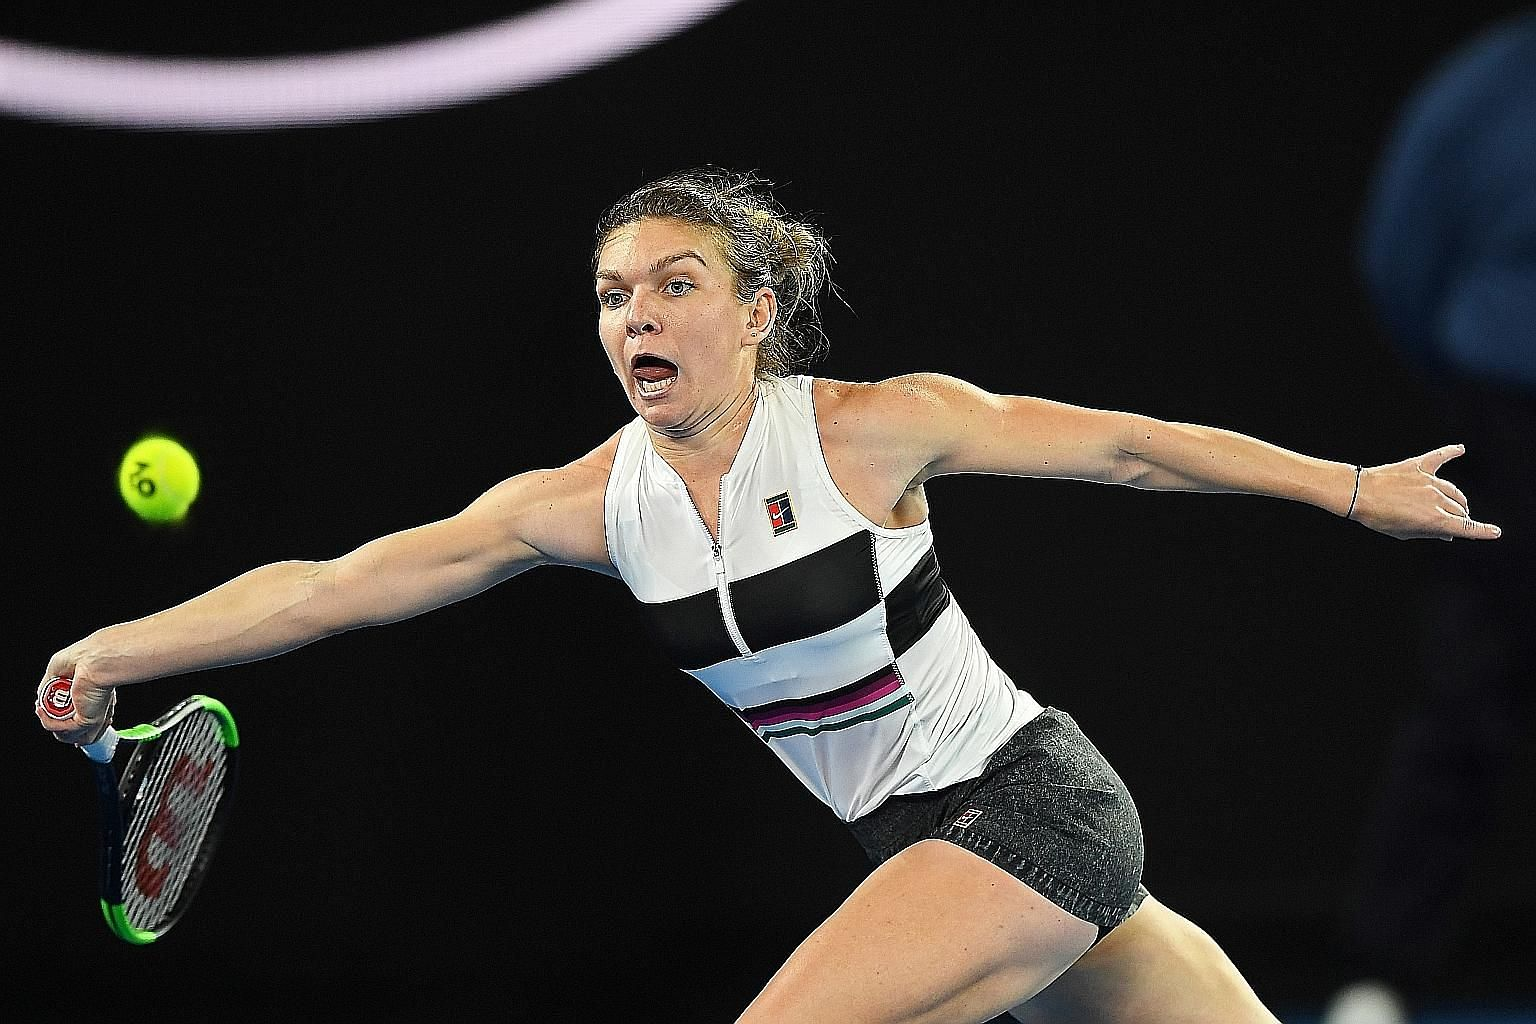 Simona Halep stretching to hit a forehand against Sofia Kenin of the USA during their second-round match. The Romanian came through three sets and pain in her thigh to progress.